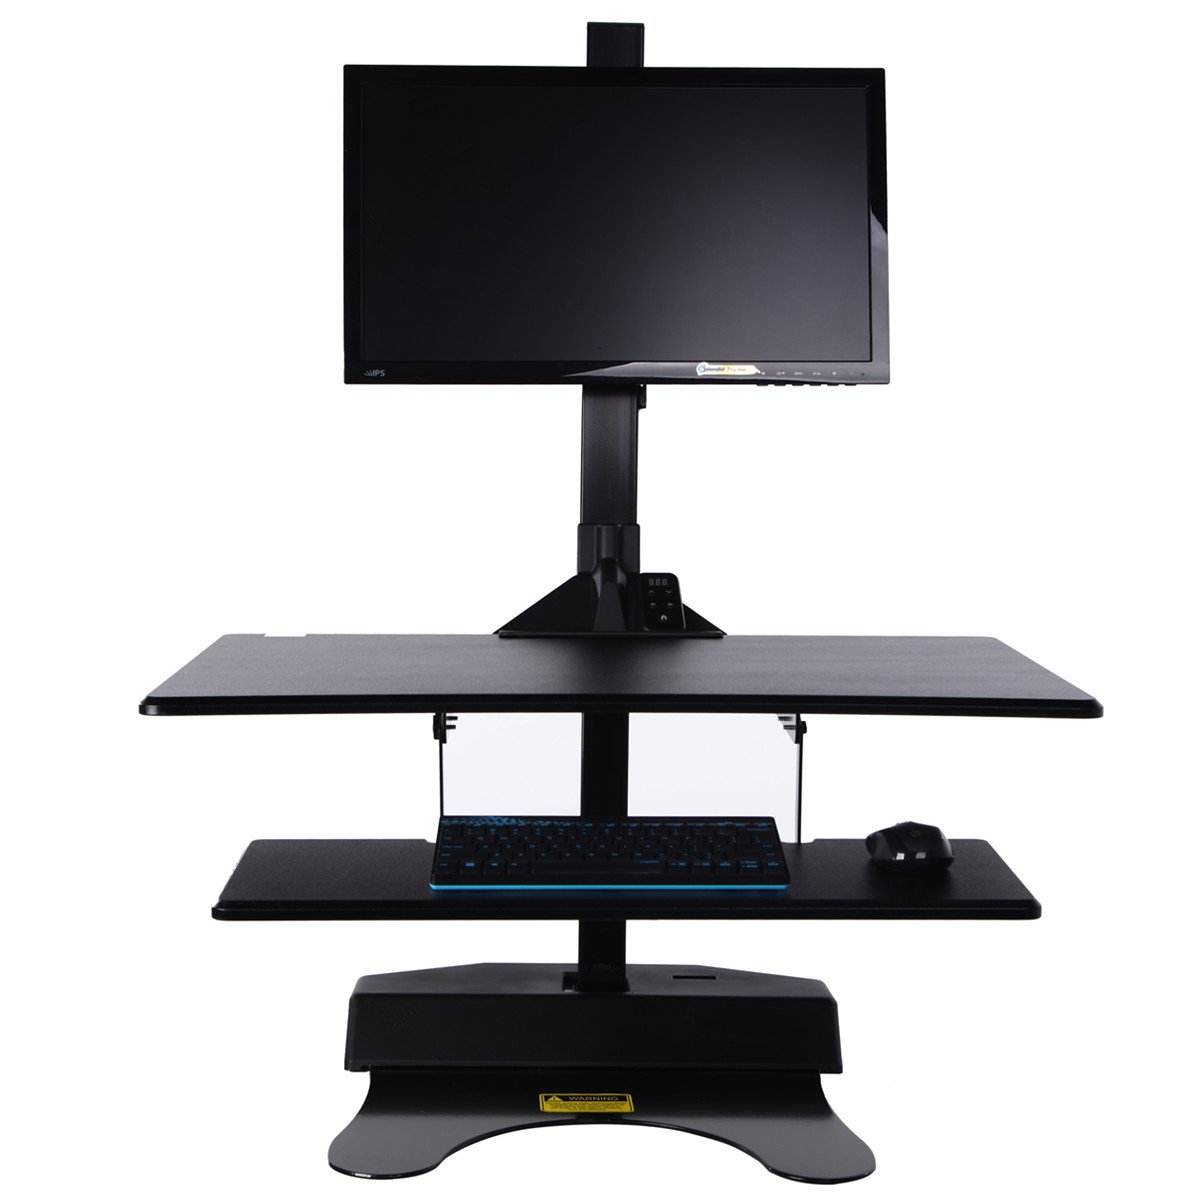 Standing Desk Riser, Freemaxdesk Electric Power Remote Control Height Adjustable Sit to Stand Desk Converter with Monitor Vesa Mount ,Worksuface(26''x21'') by freemaxdesk (Image #9)